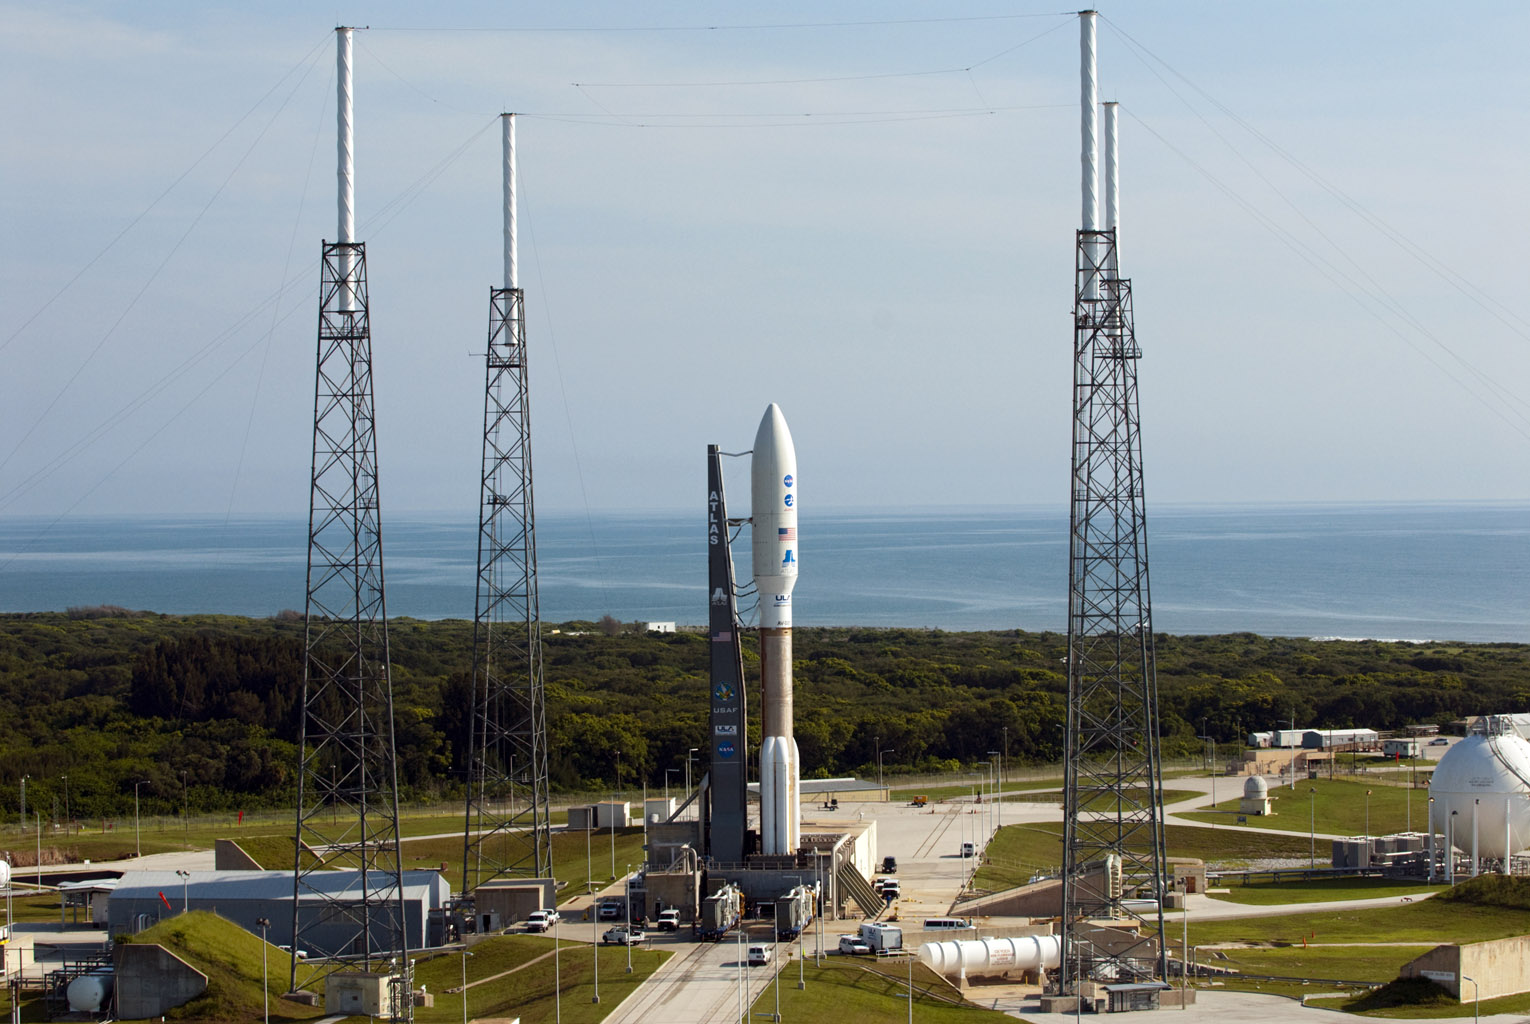 NASA's Juno spacecraft awaits launch from inside the payload fairing atop a United Launch Alliance Atlas V-551 launch vehicle. Juno and its rocket are at Space Launch Complex 41 on Cape Canaveral Air Force Station in Florida.